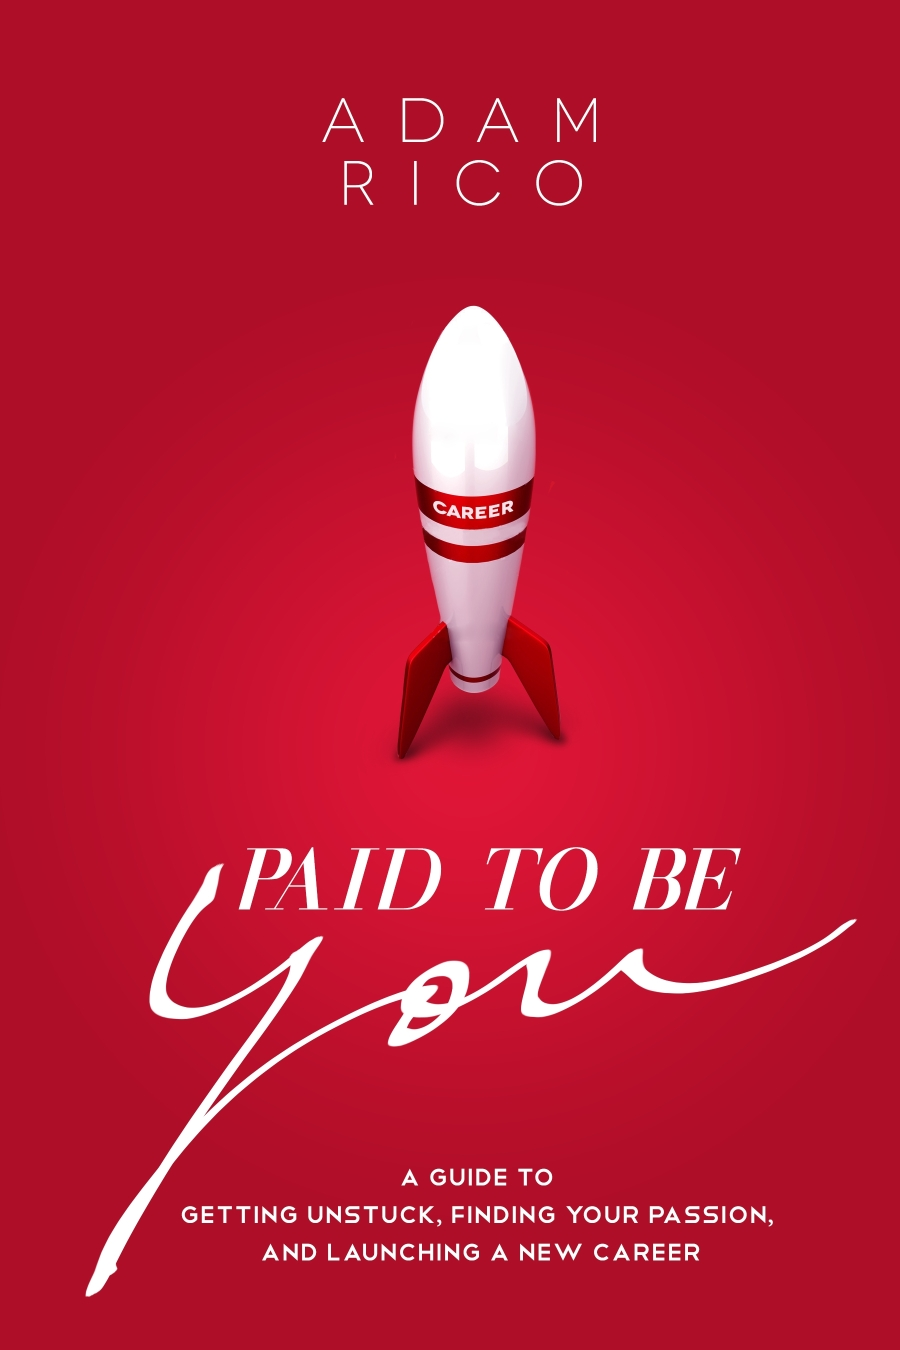 Paid to be you concept 2